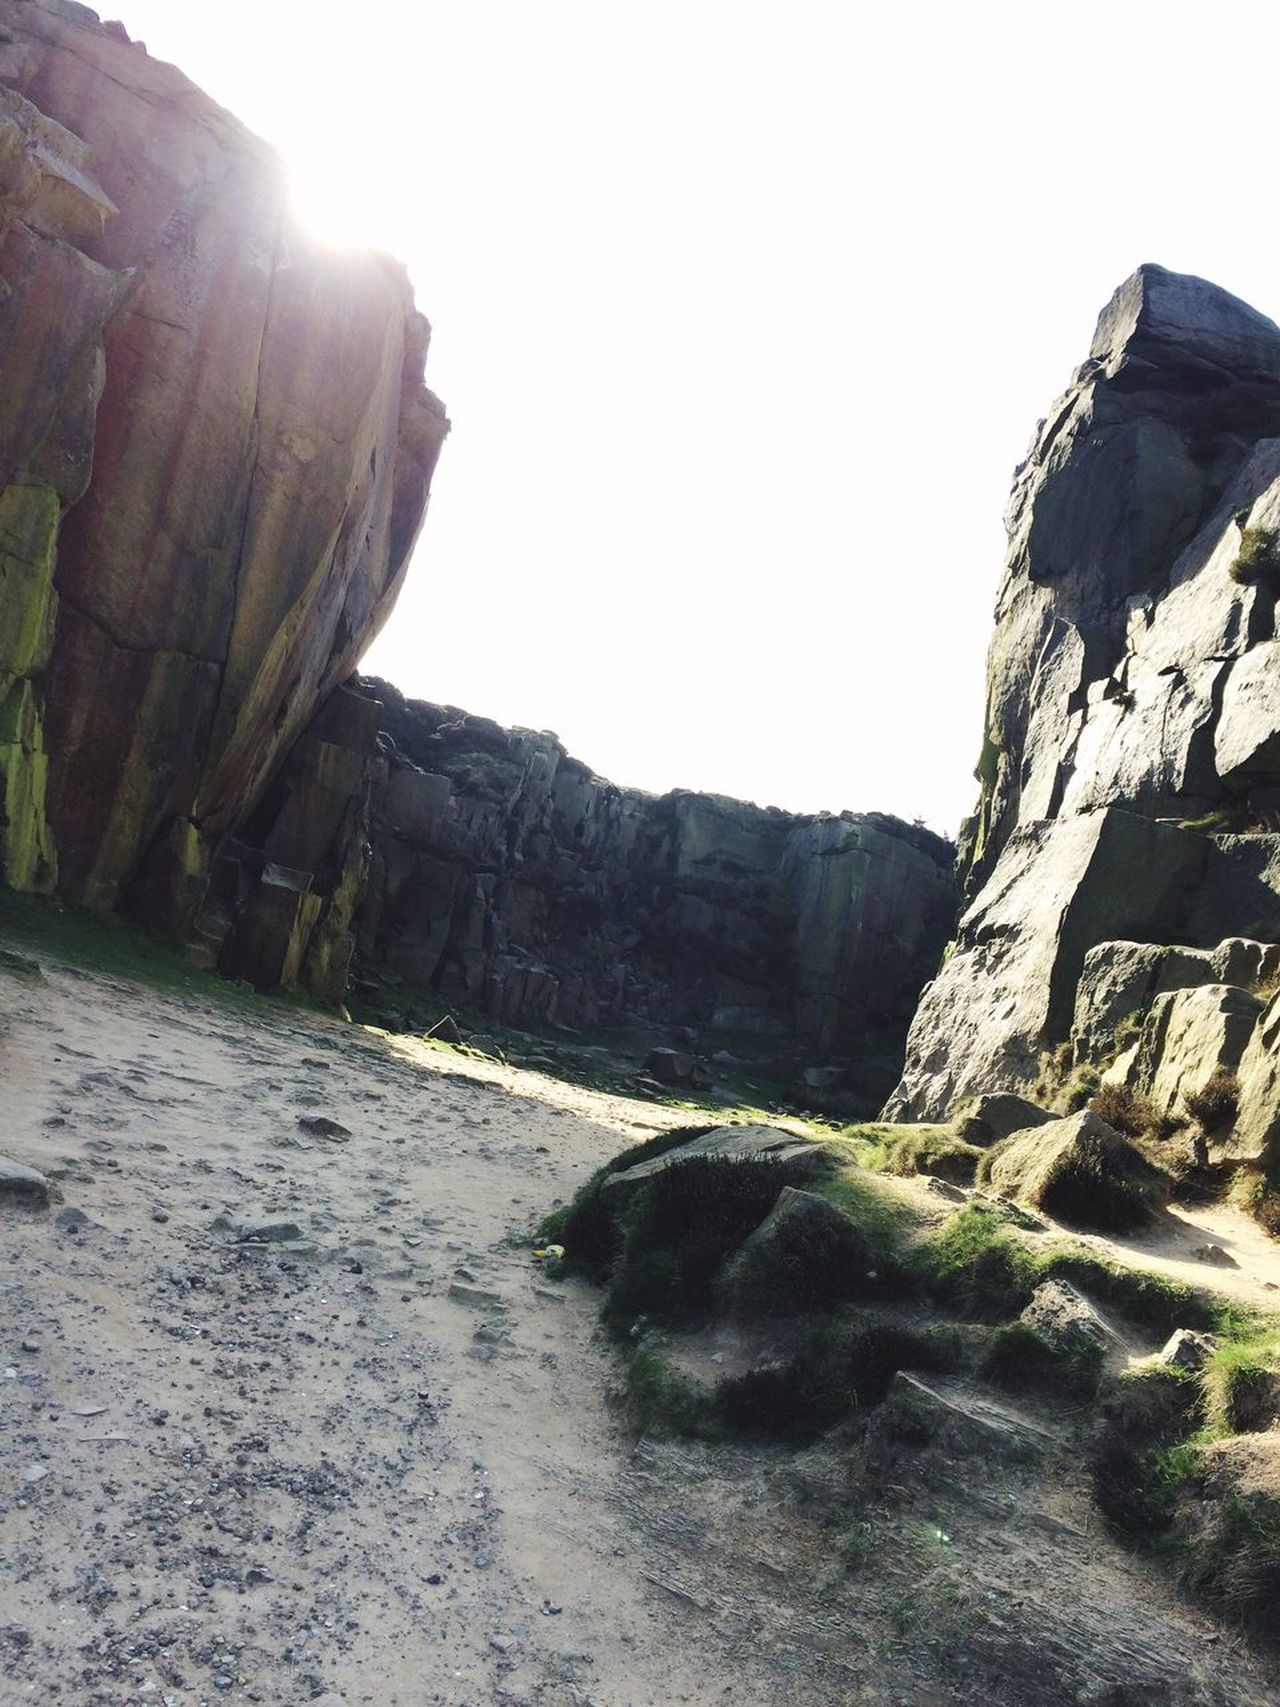 Archway to the unknown... Ilkley Beauty In Nature Tranquility Low Angle View Physical Geography EyeEmNewHere Yorkshire